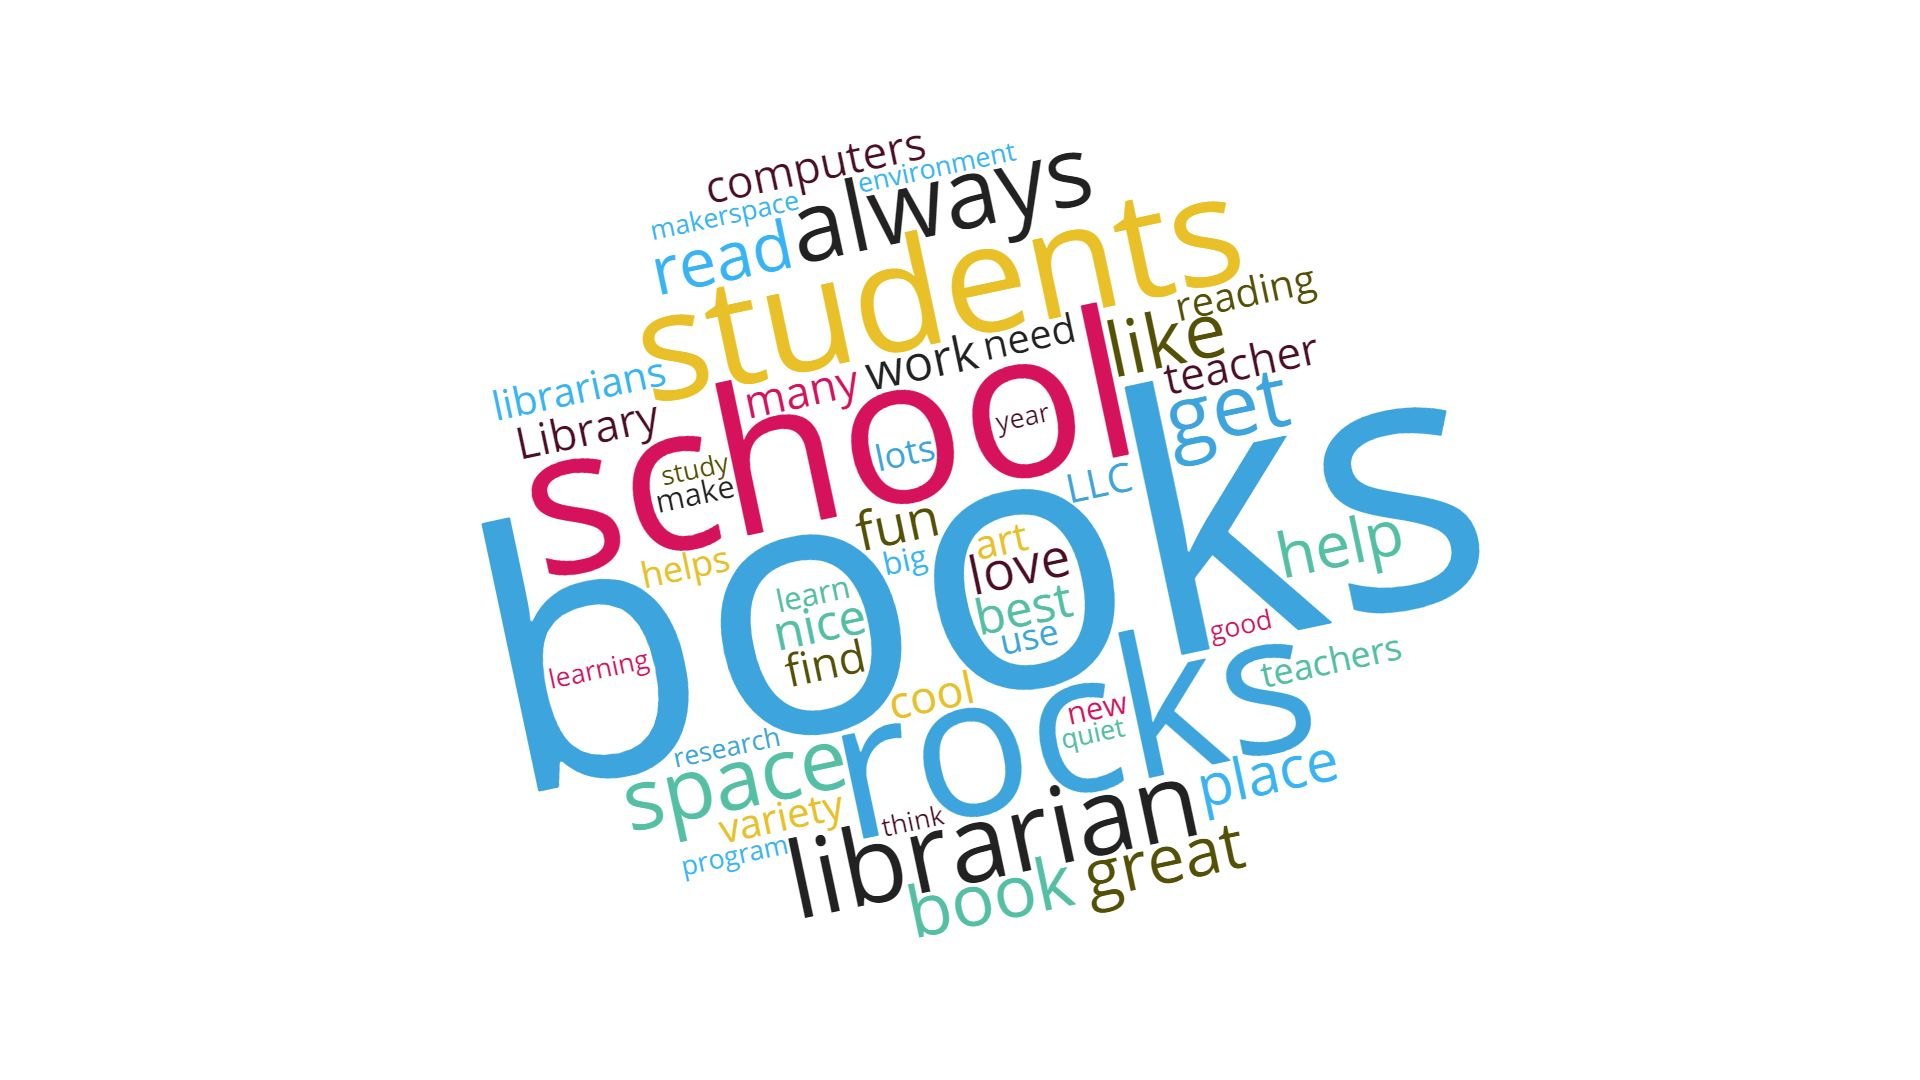 My School Library Rocks word cloud